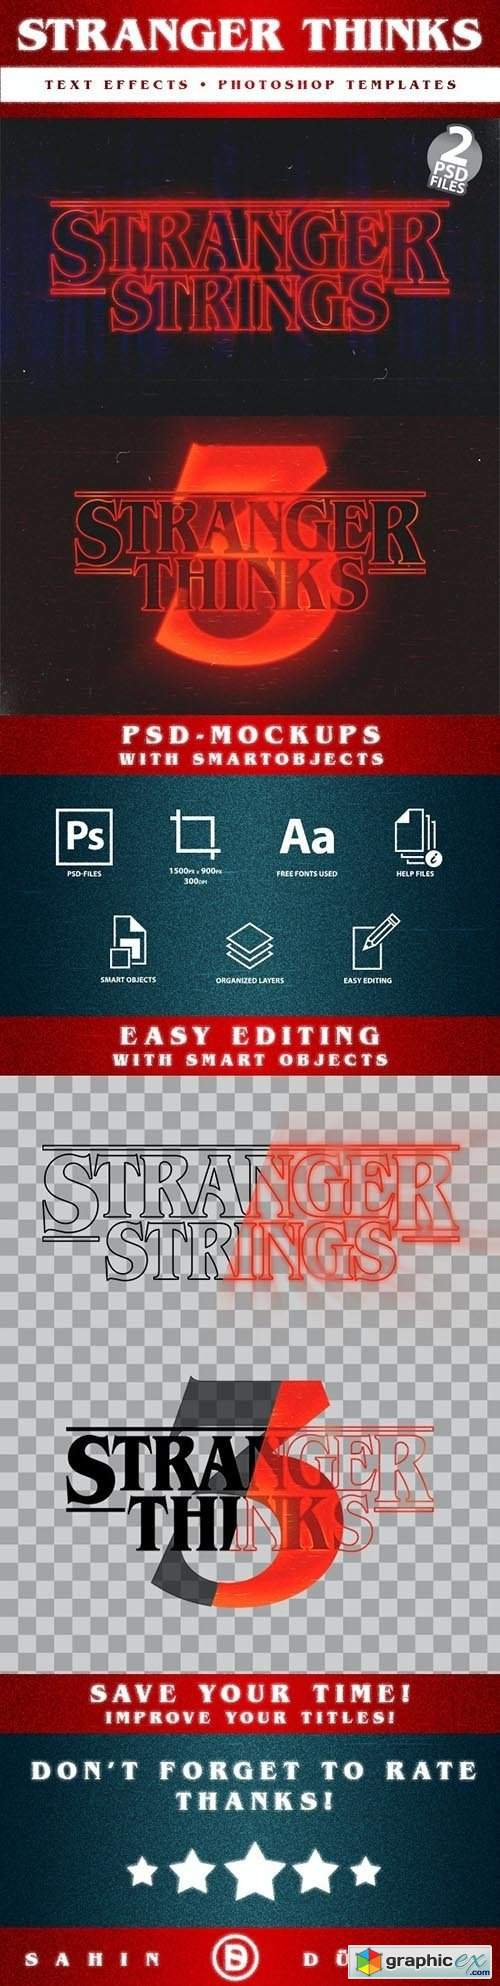 Stranger Thinks | Text-Effects/Mockups | Template-Package